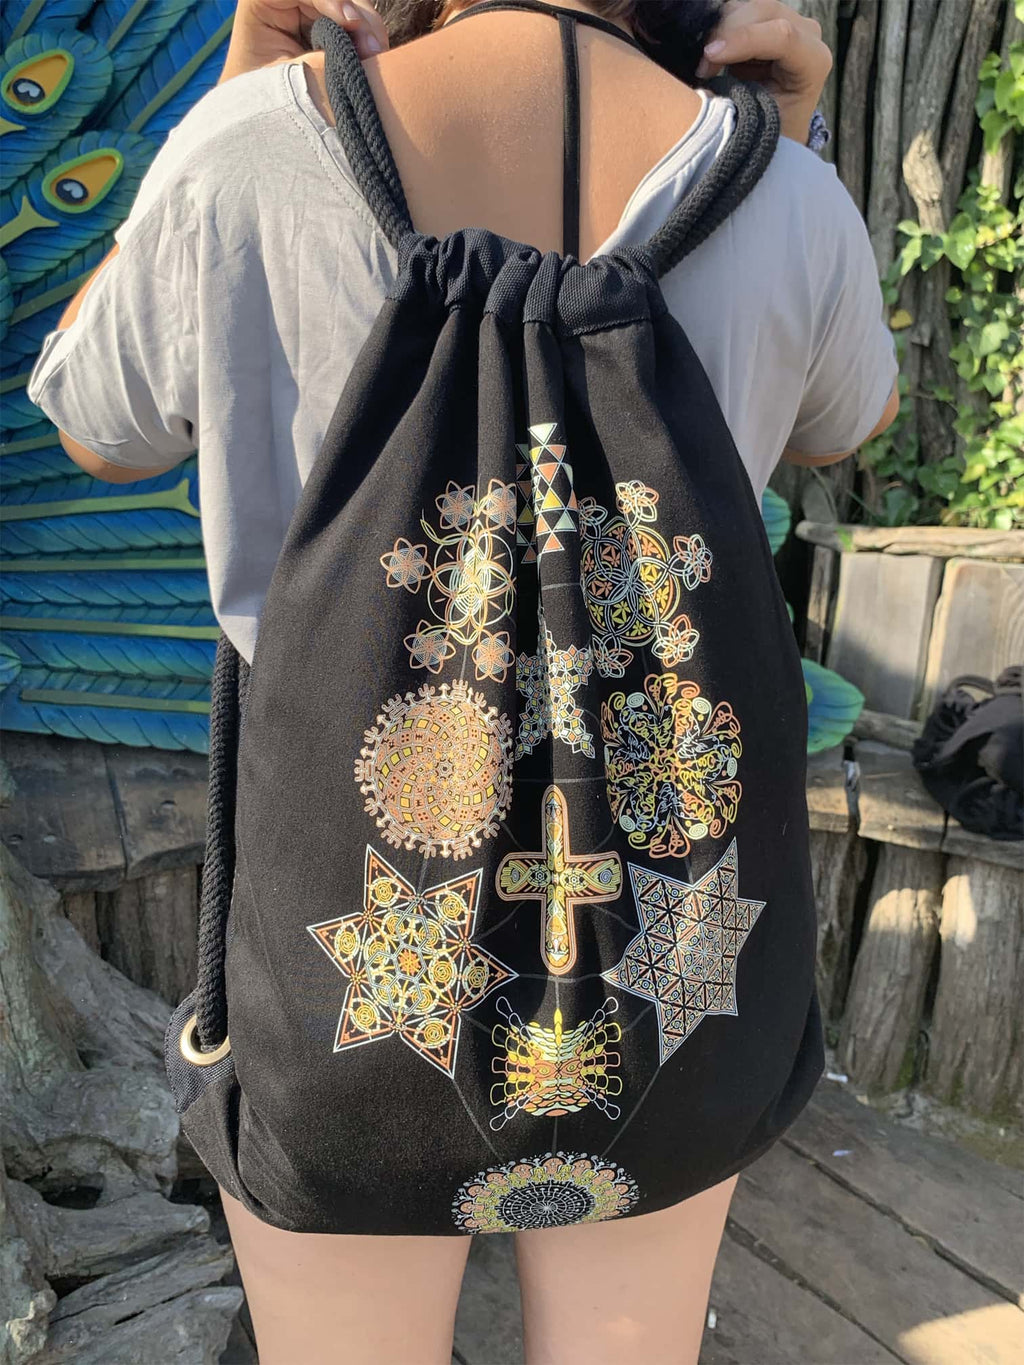 Symbol Tree Drawstring Bag - symbolika